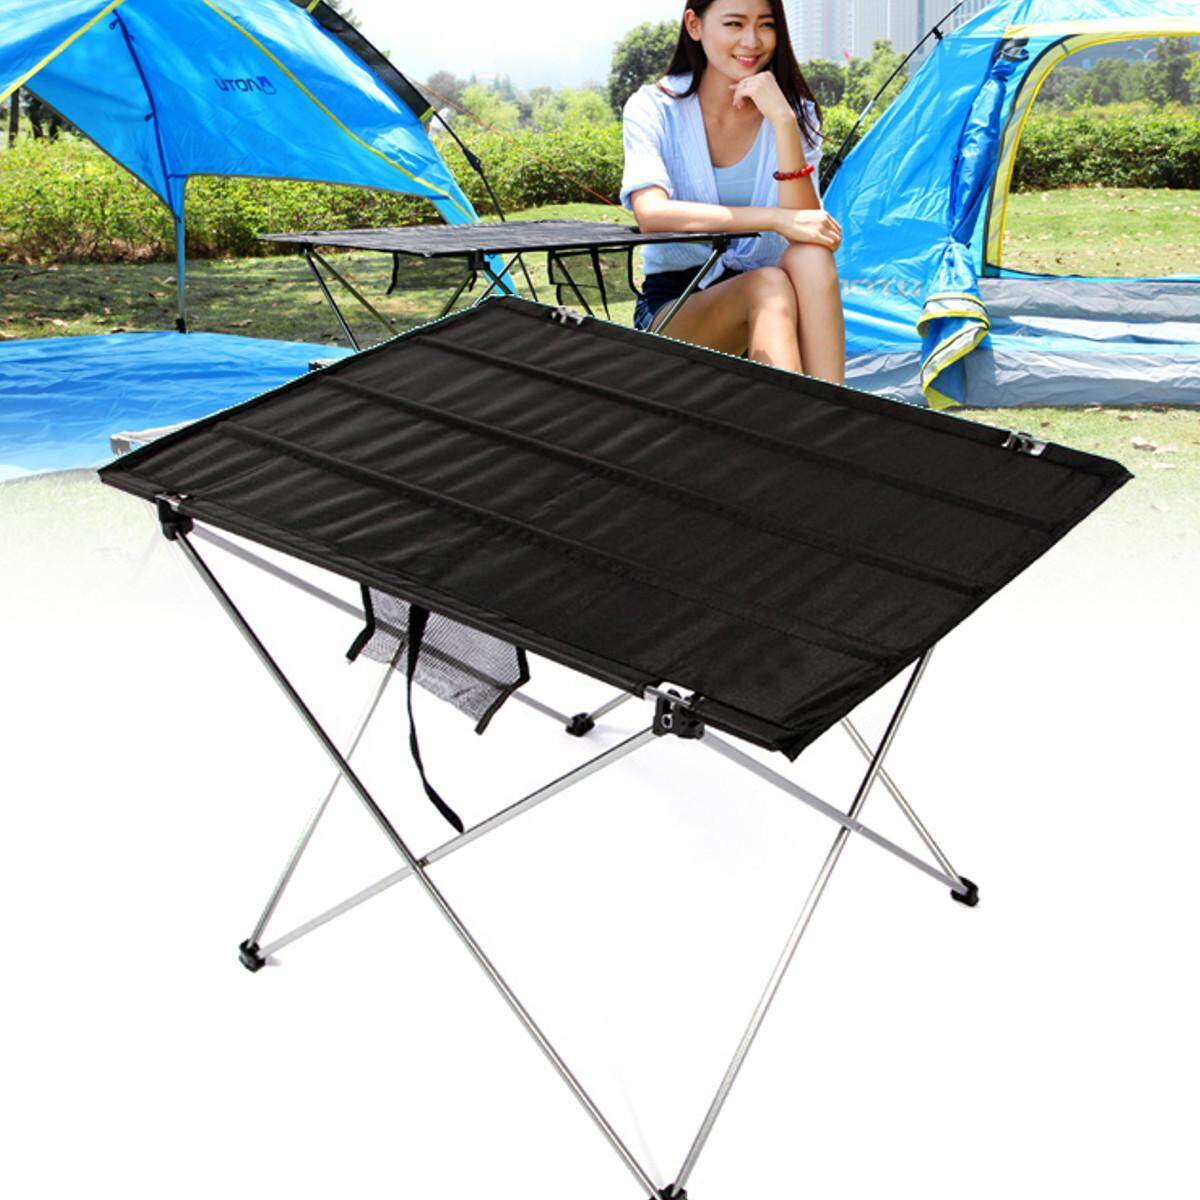 Portable Folding Picnic Barbecue Table Light Weight Foldable Camping Fishing Beach Table